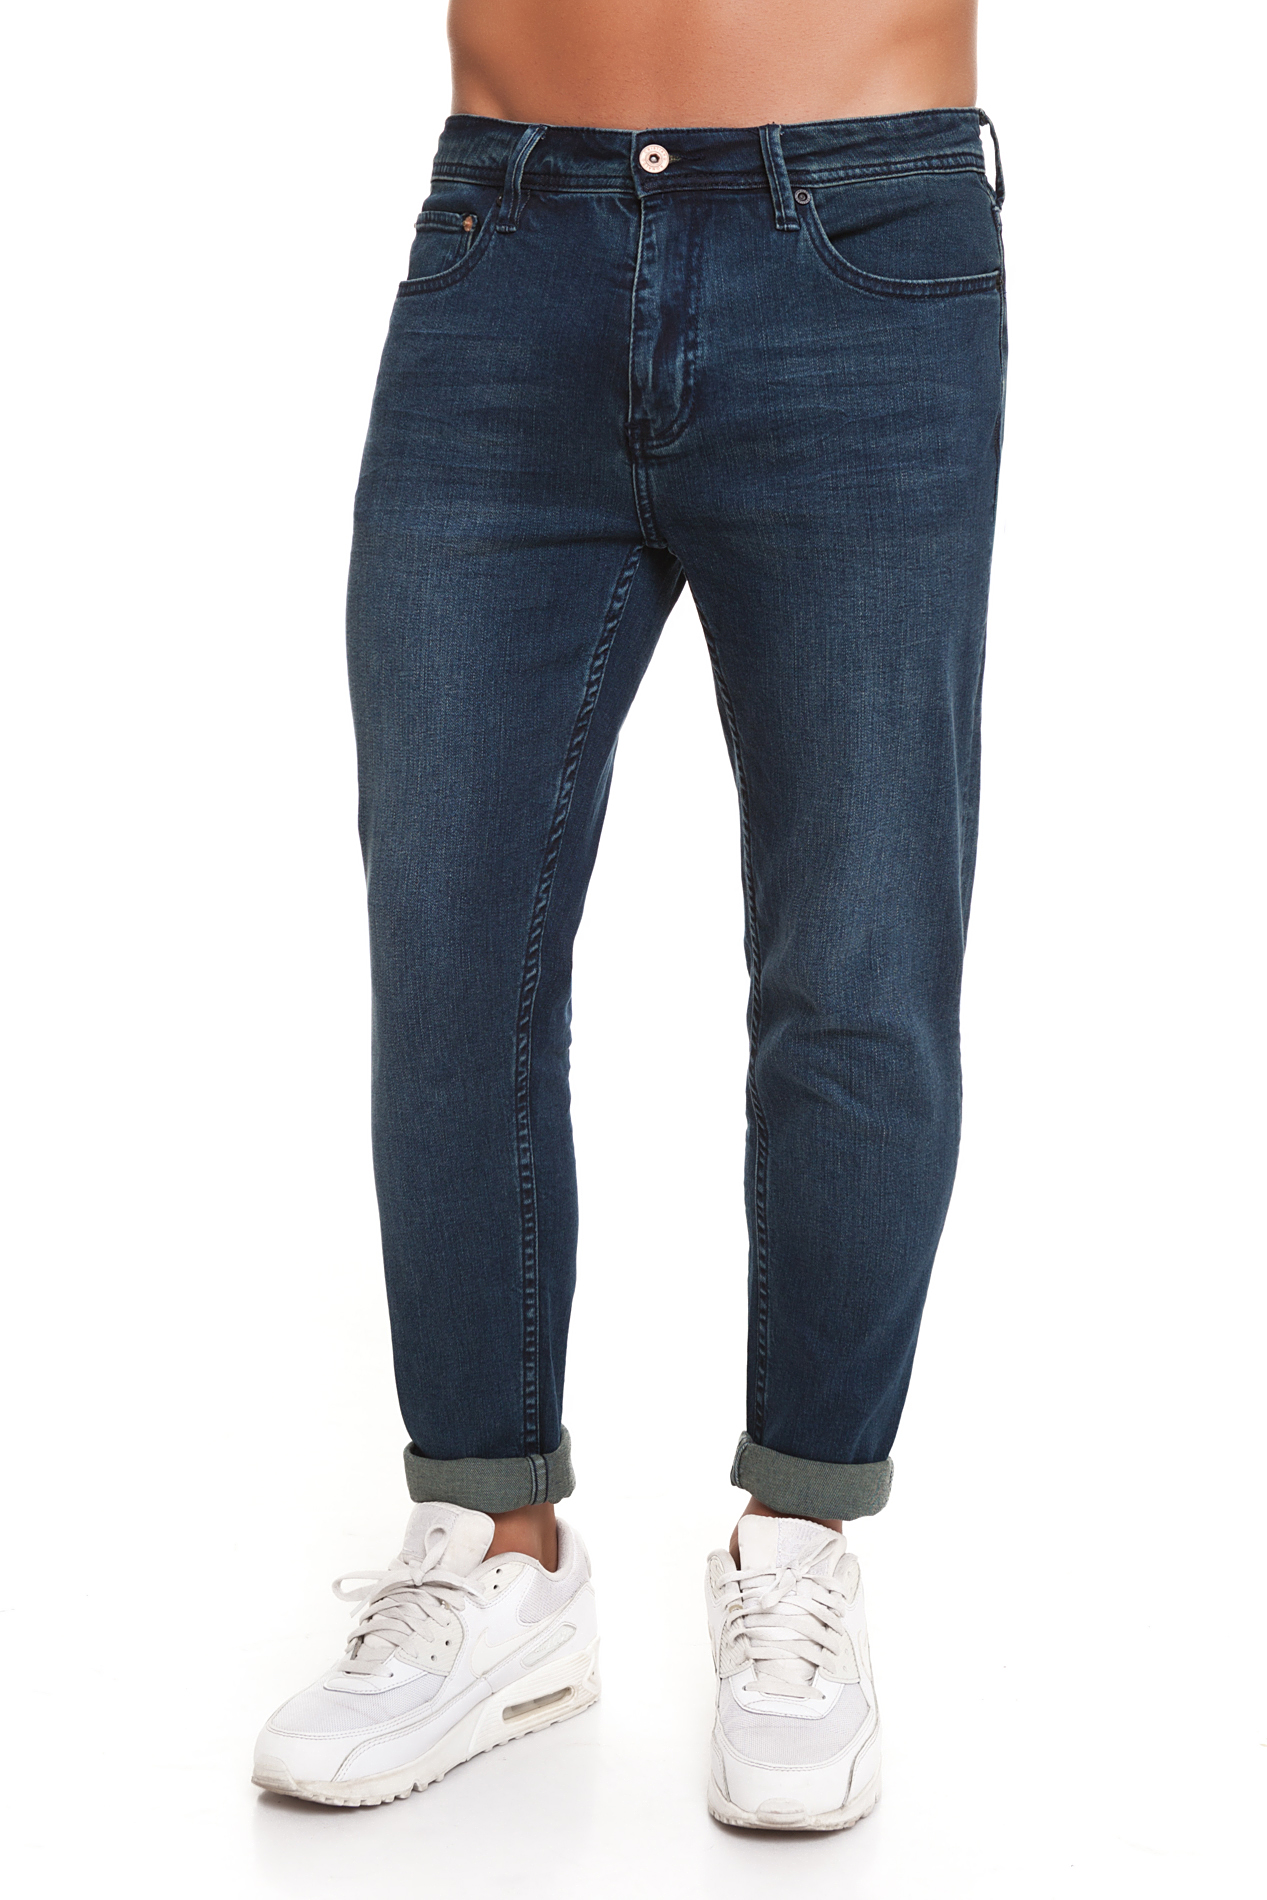 CR7 Jeans For Men Dark Blue Jeans Casual Casual Super Skinny Pockets CRD027D